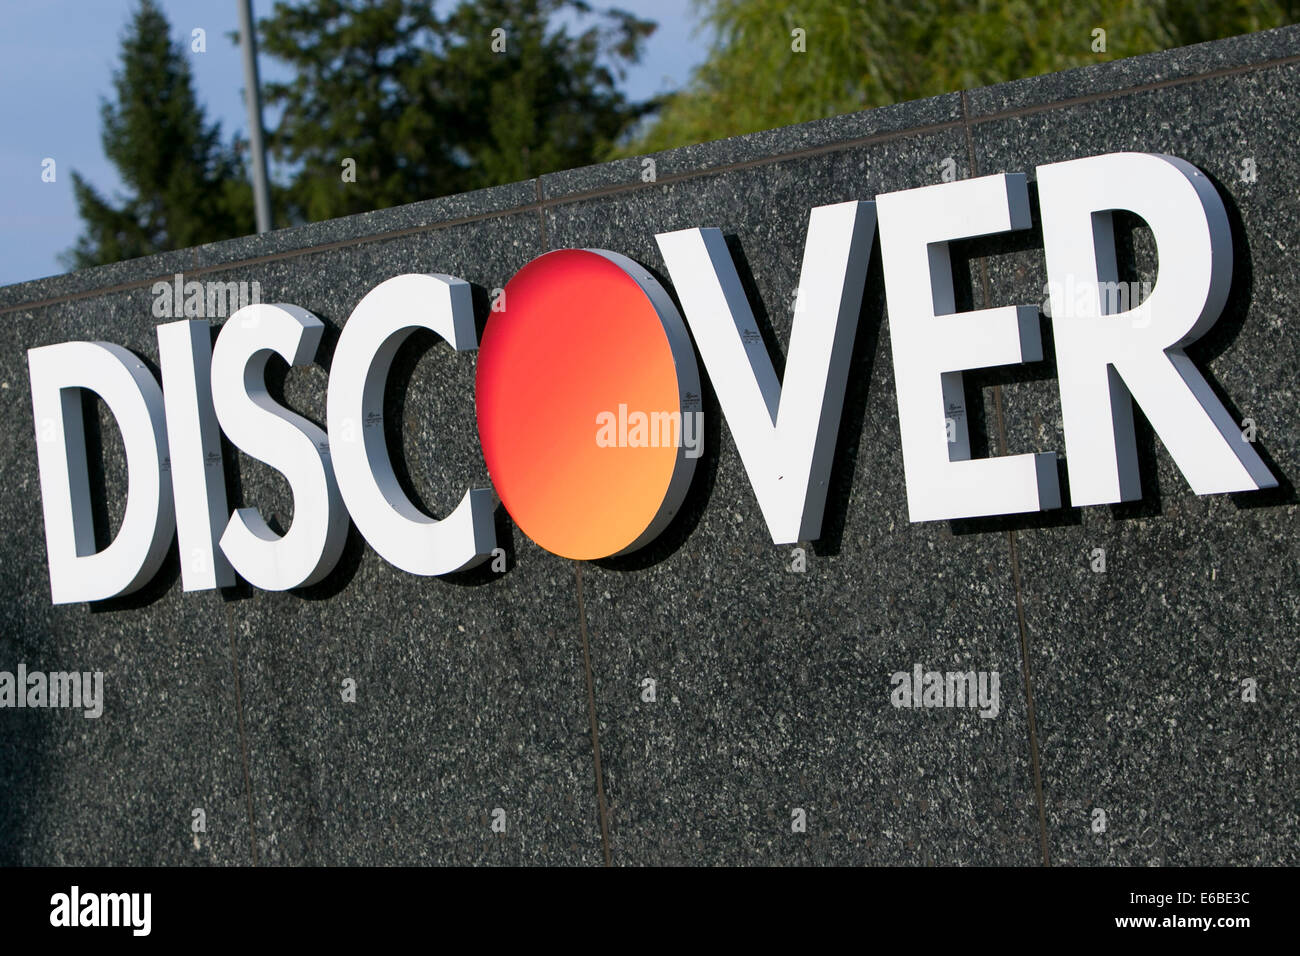 The headquarters of Discover Financial Services in Riverwoods, Illinois. - Stock Image